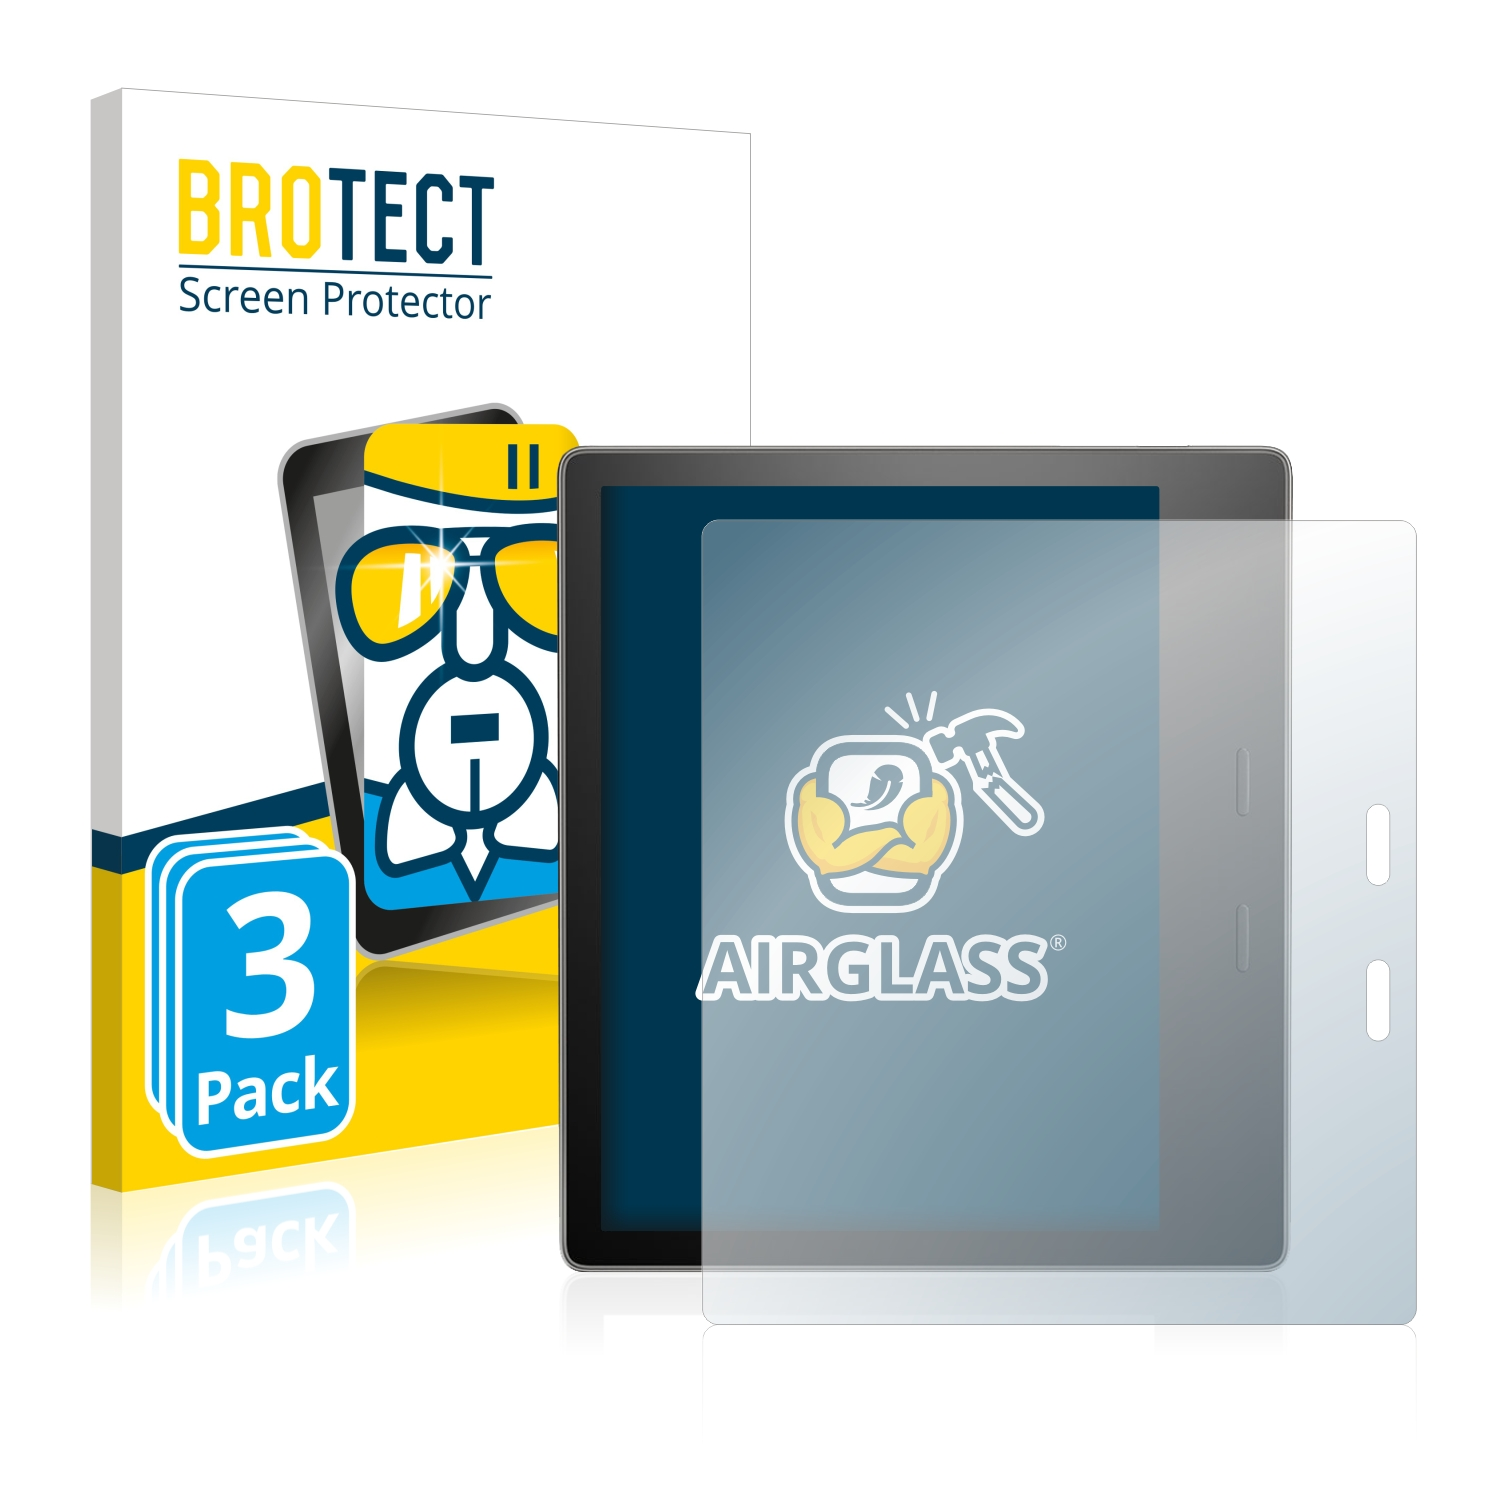 BROTECT AirGlass Screen Protector Glass compatible with  Kindle Keyboard 3G 9H